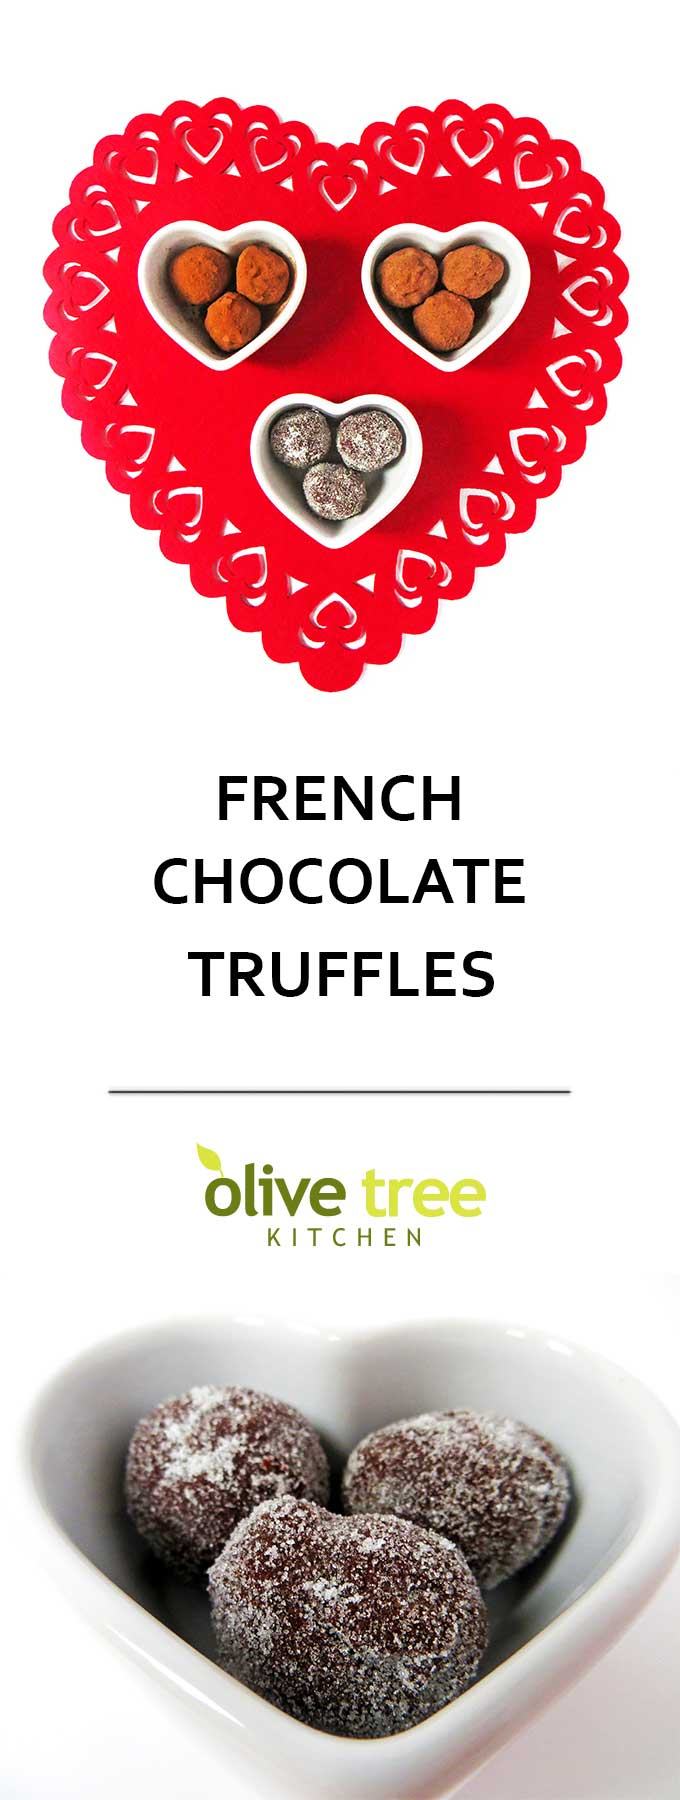 French Chocolate Truffles: rich, buttery and oh so chocolatey, these easy chocolate truffles are an authentic French recipe and perfect for a romantic Valentine's Day treat!